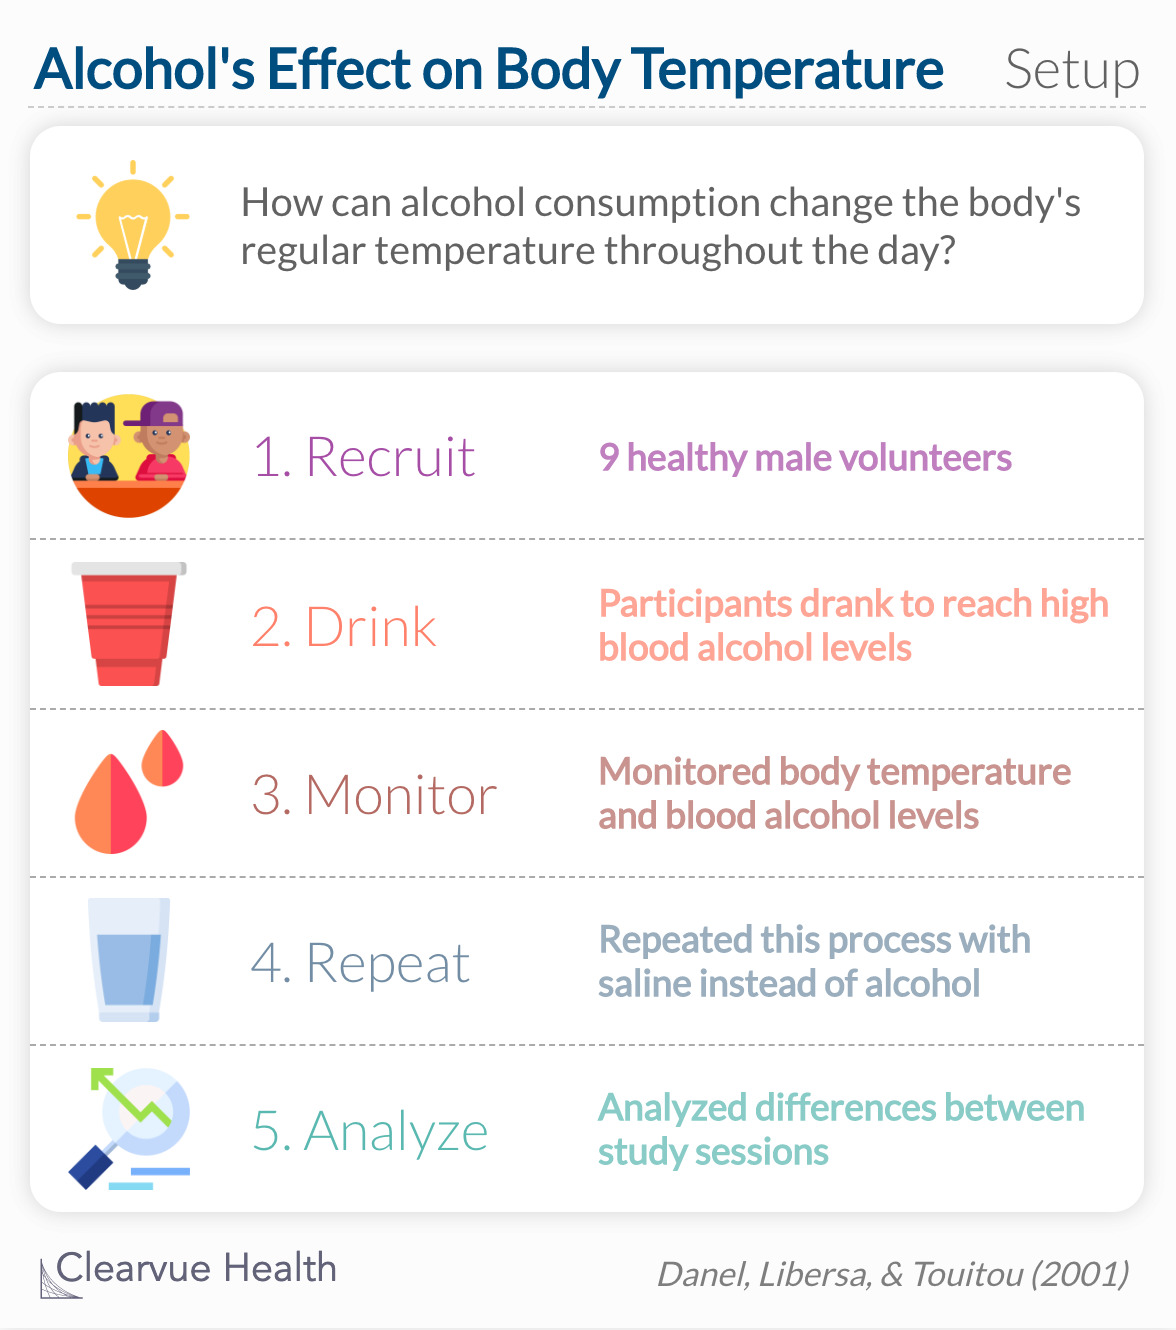 How can alcohol consumption change the body's regular temperature throughout the day?